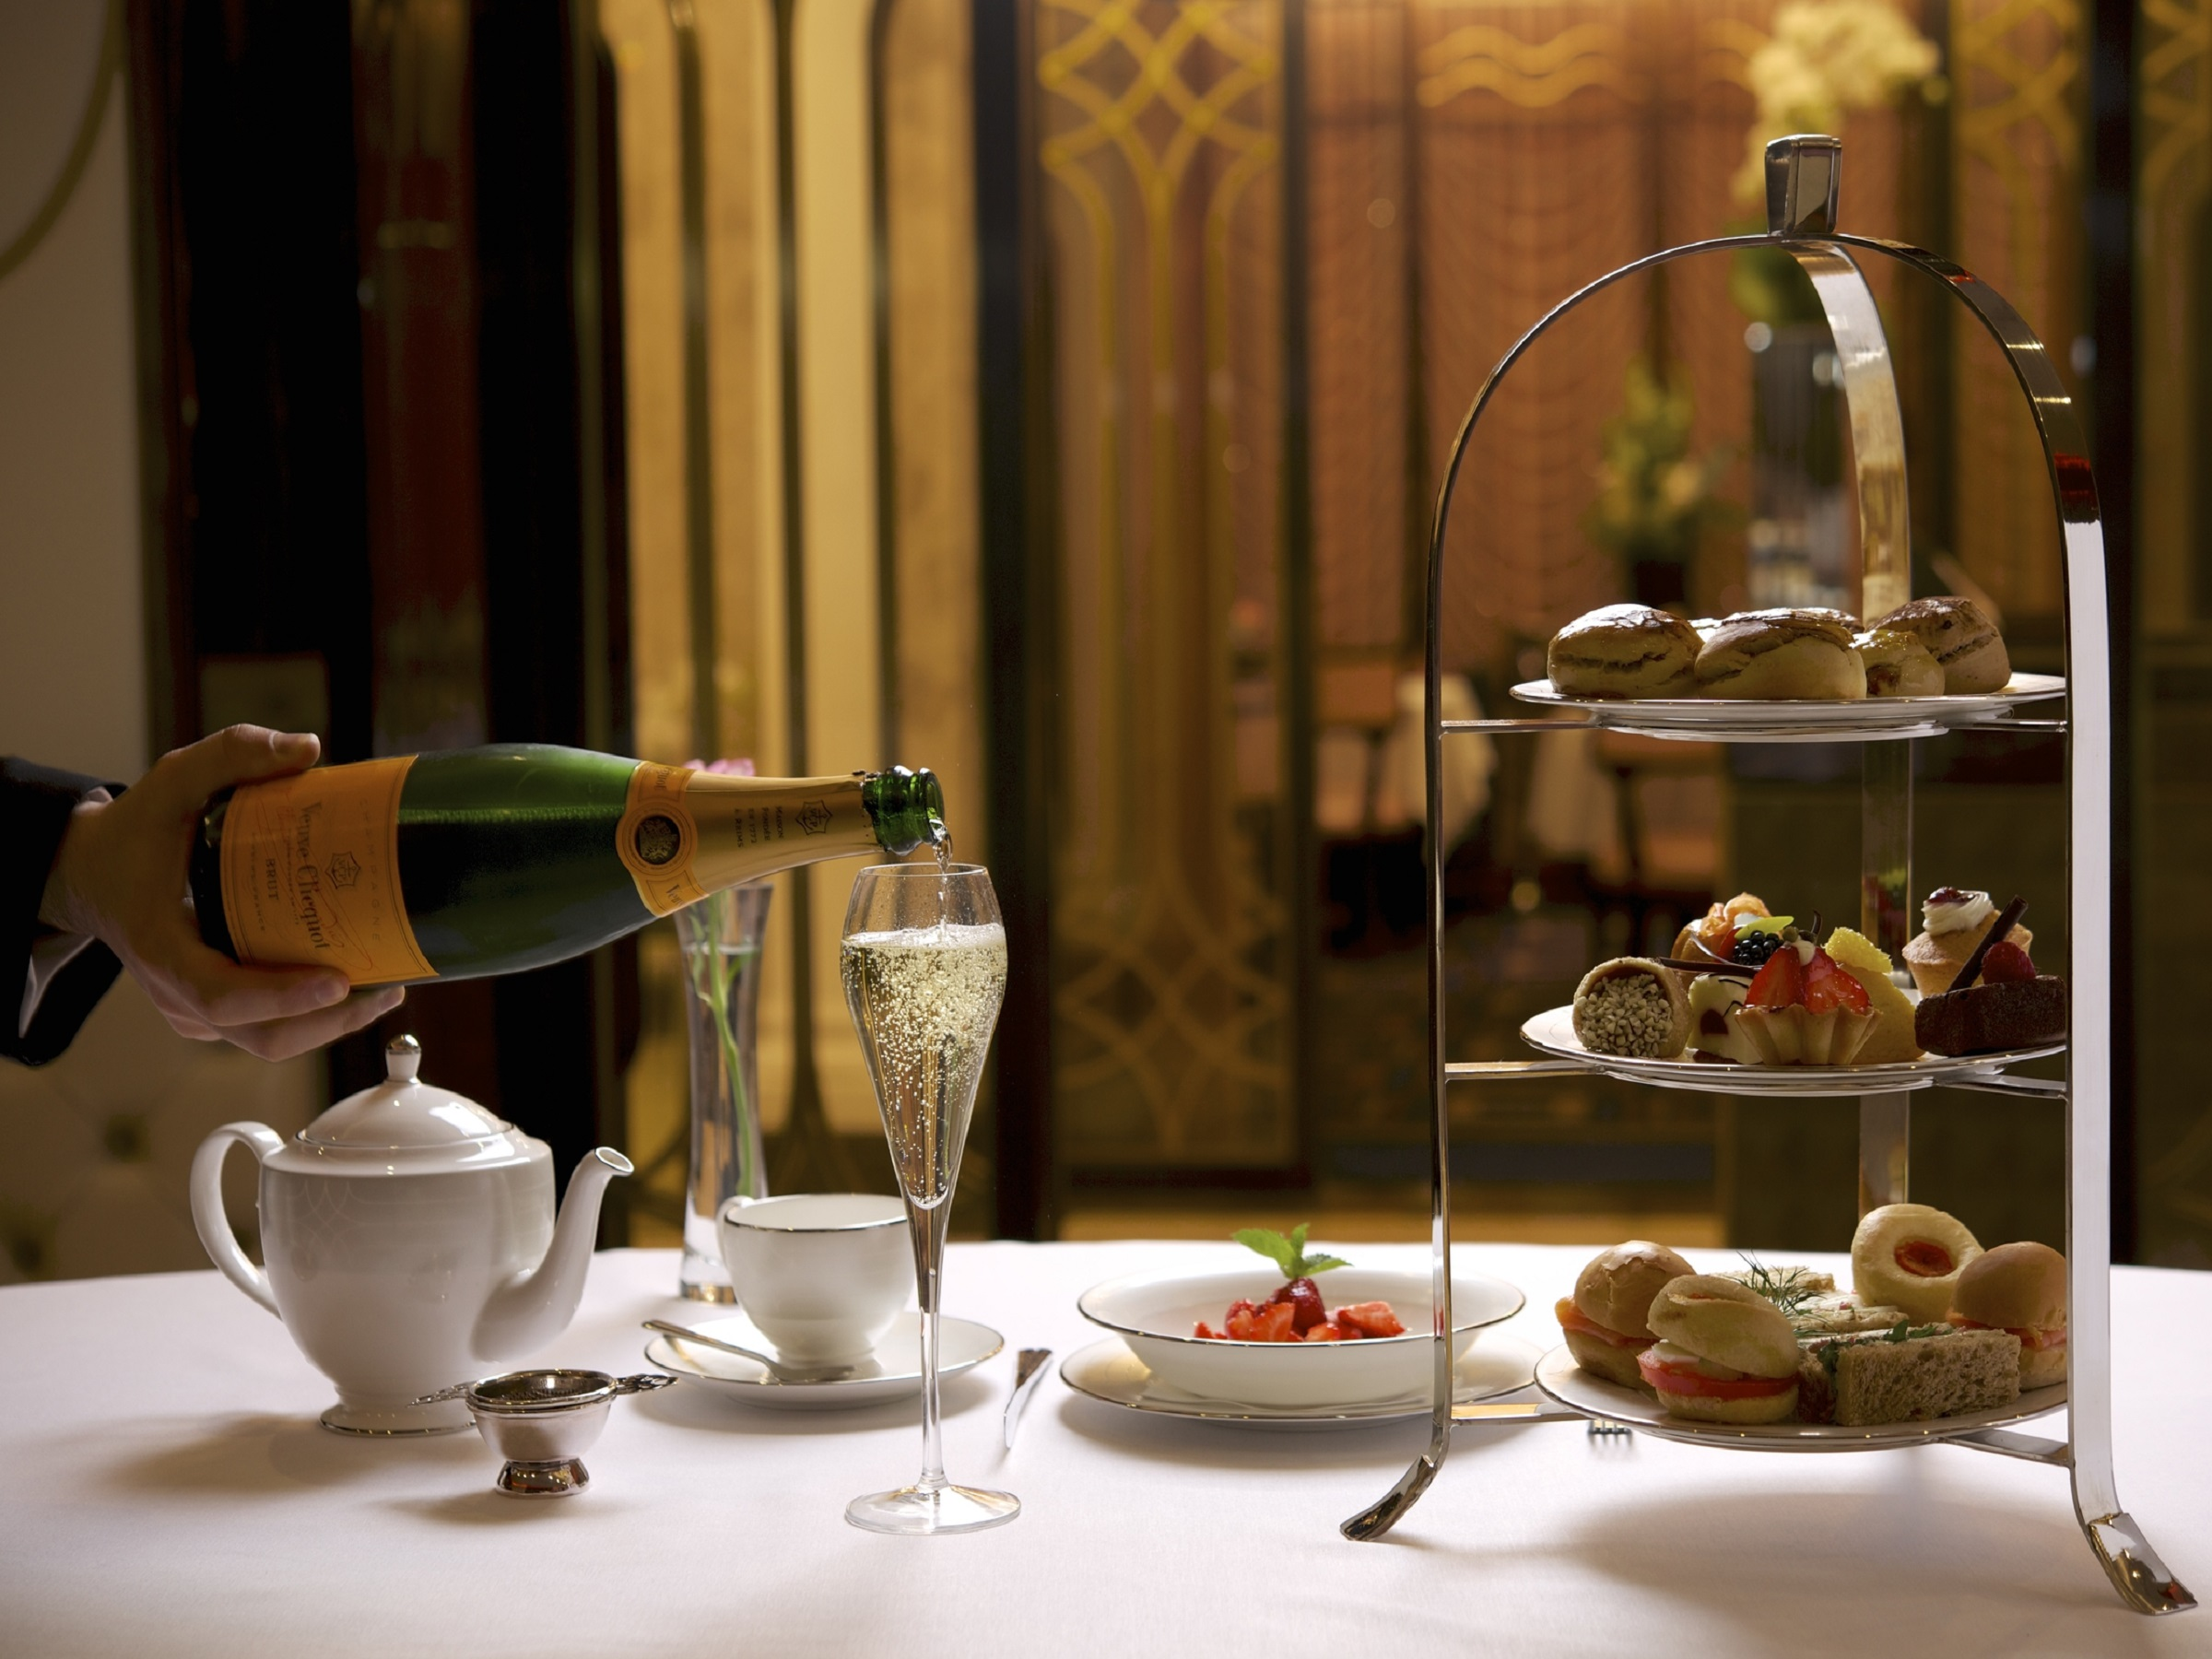 Reserve a table at Afternoon Tea at The Wellesley